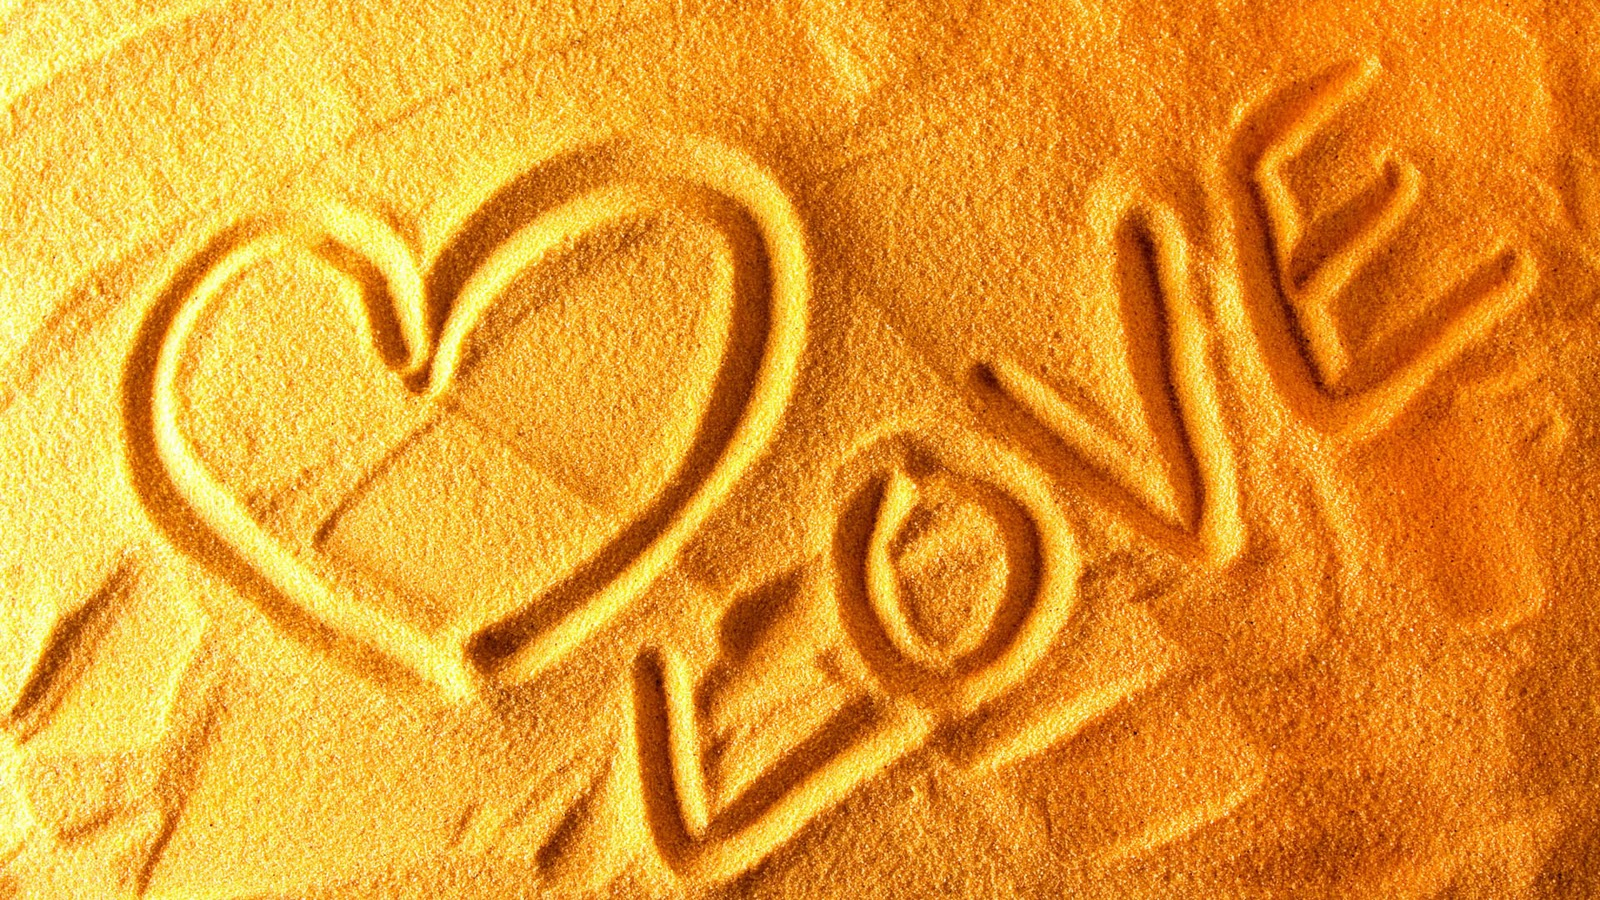 http://3.bp.blogspot.com/_nD_YgZuOadA/TVE7SpFvnOI/AAAAAAAABX8/b2eUp2Hx8TM/s1600/beautiful-sand-love-hd-wallpaper-1920x1080.jpg